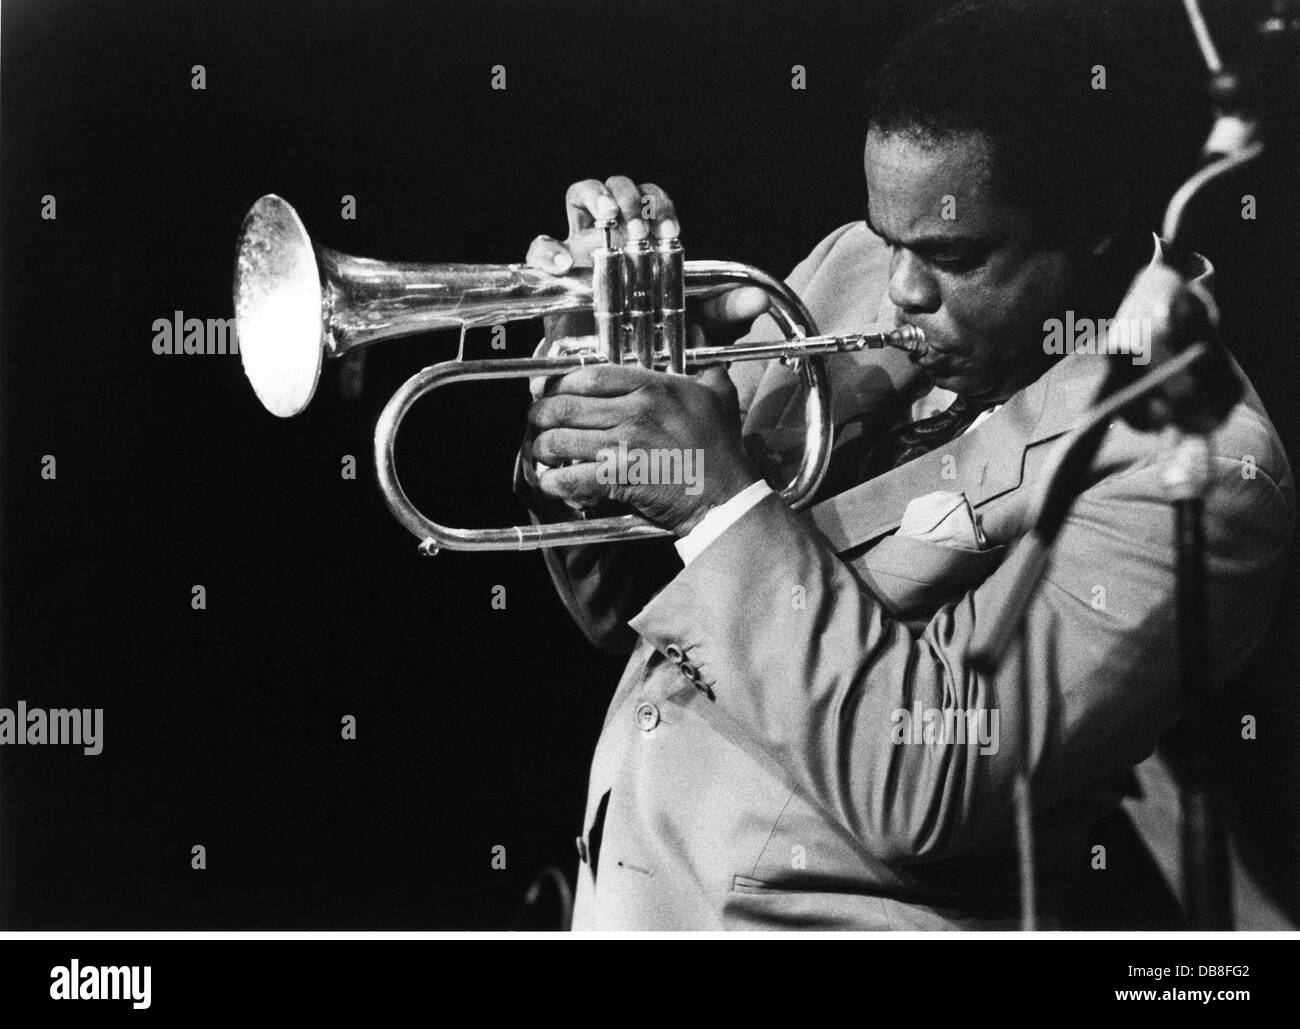 Hubbard, Freddie, 7.4.1938 - 29.12.2008, American musician (jazz), trumpeter, half length, during stage performance, Stock Photo